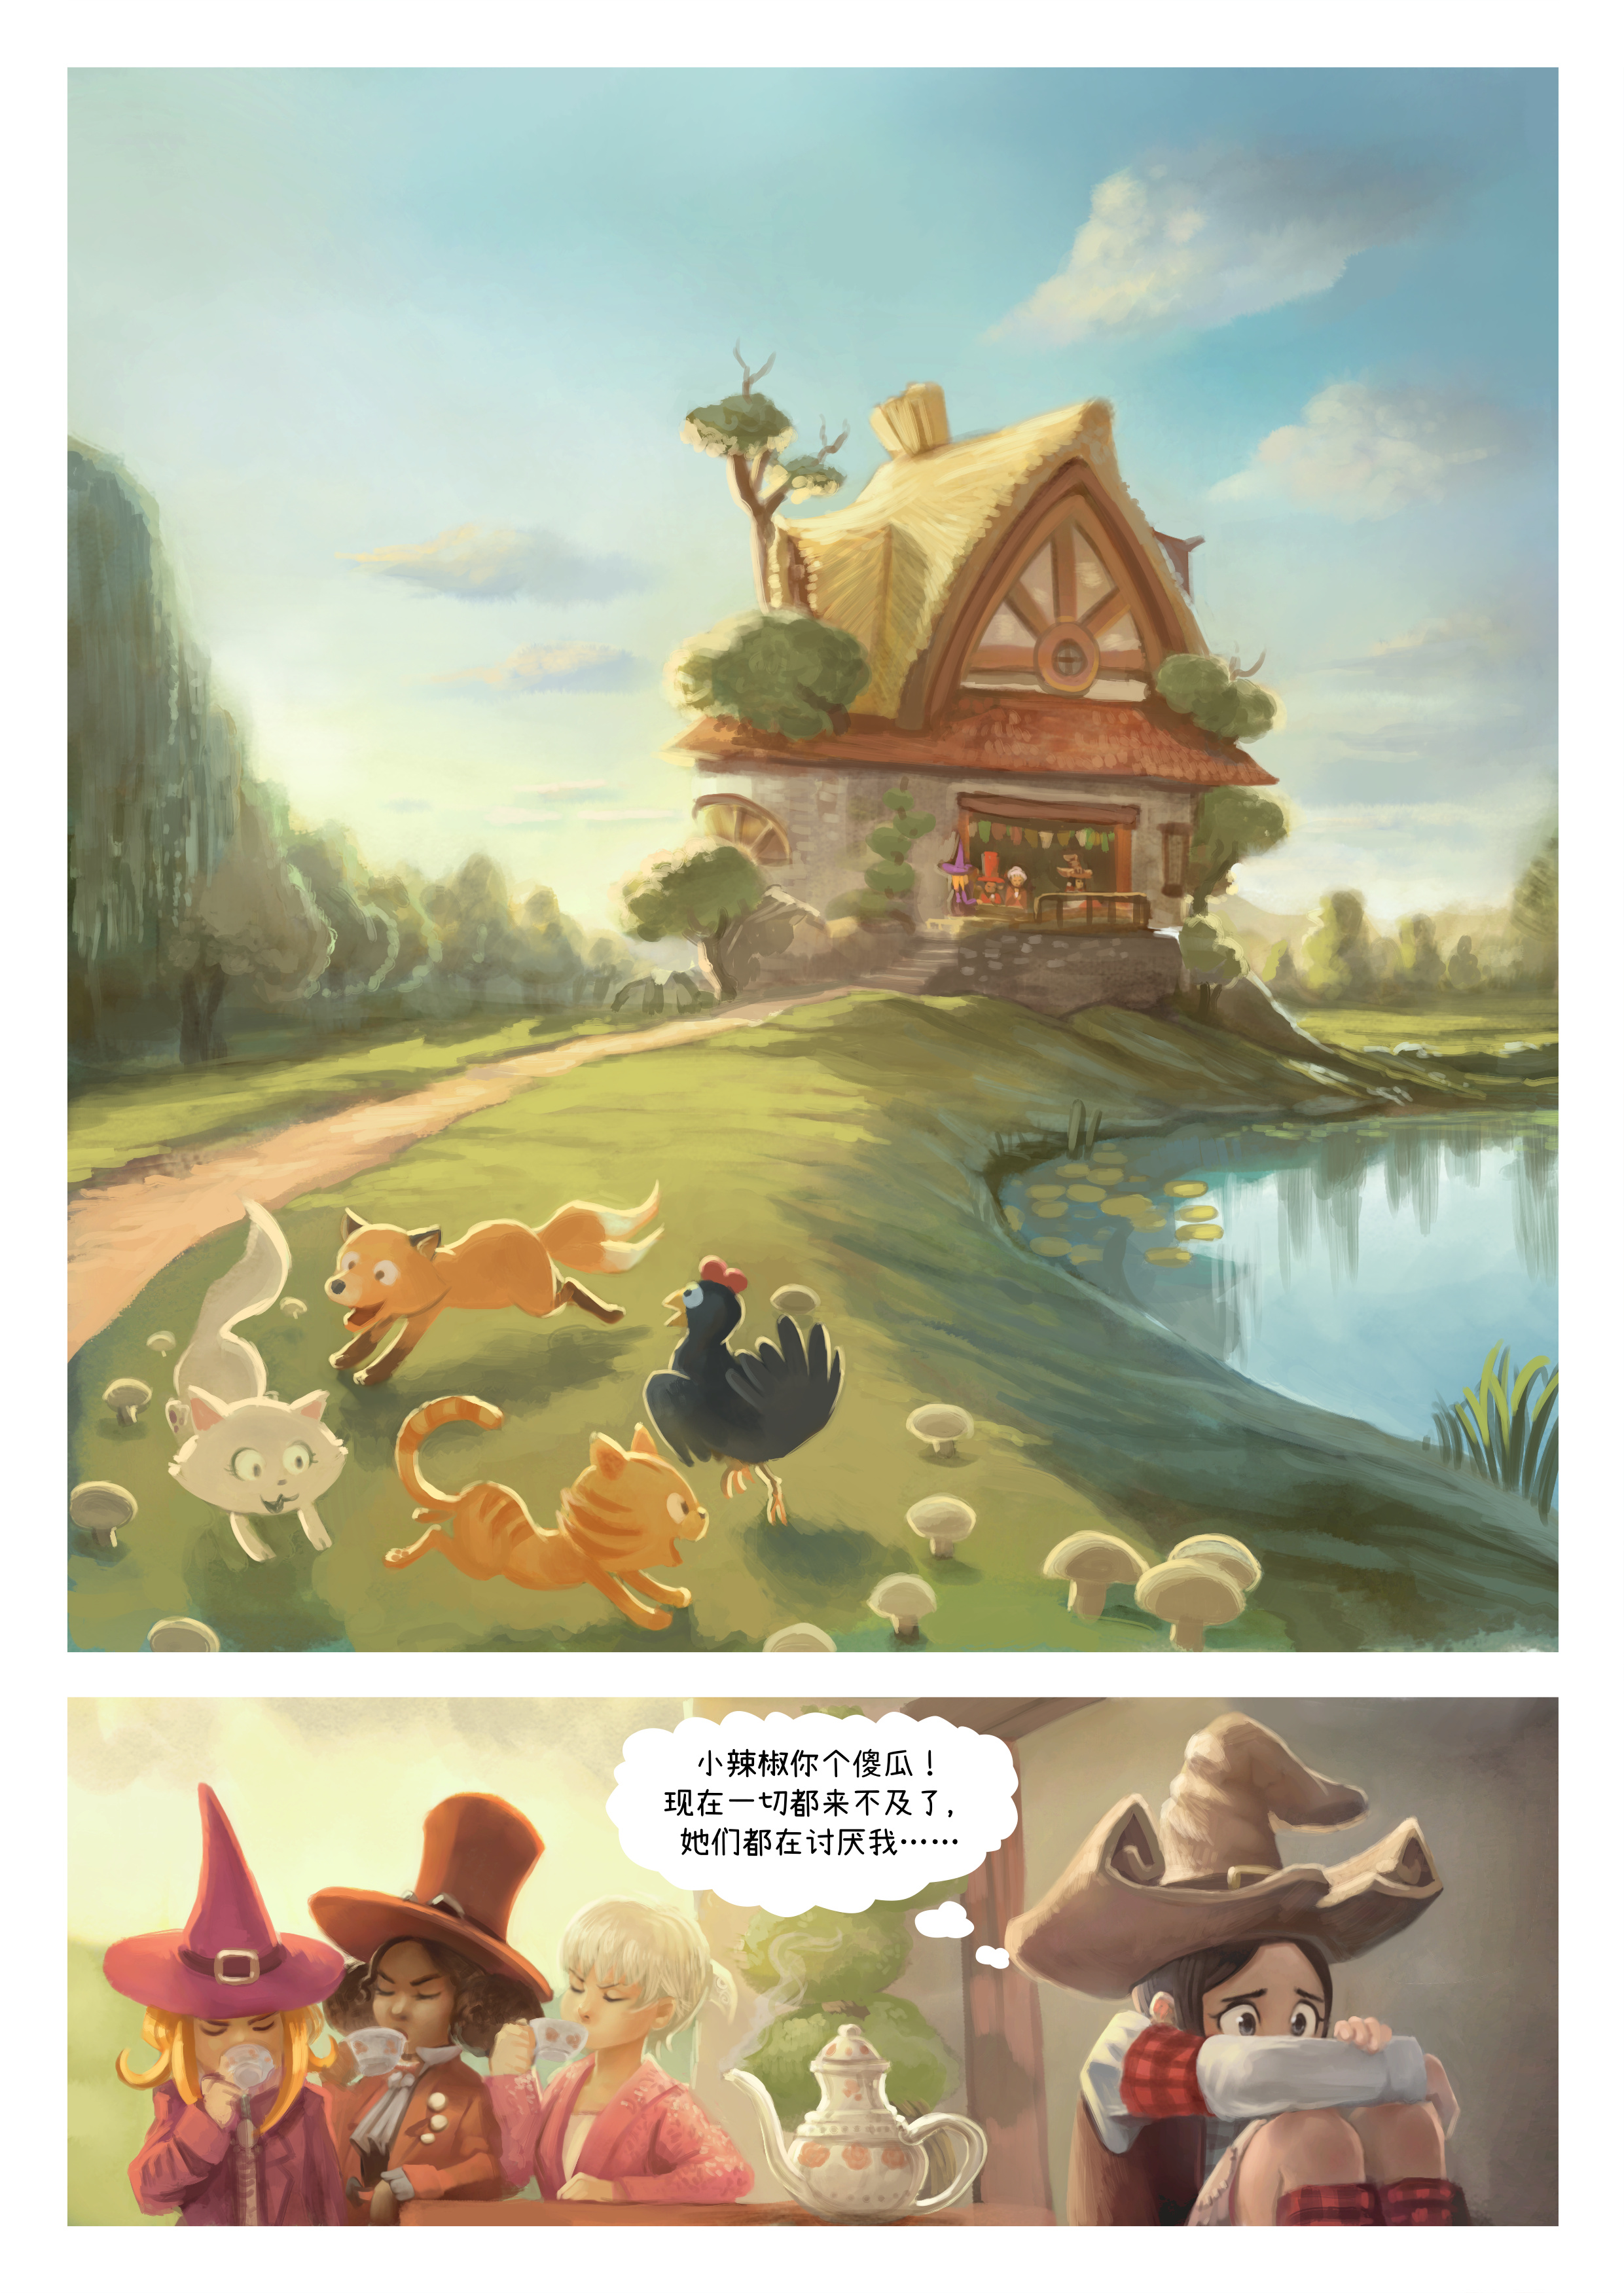 A webcomic page of Pepper&Carrot, 漫画全集 9 [cn], 页面 3